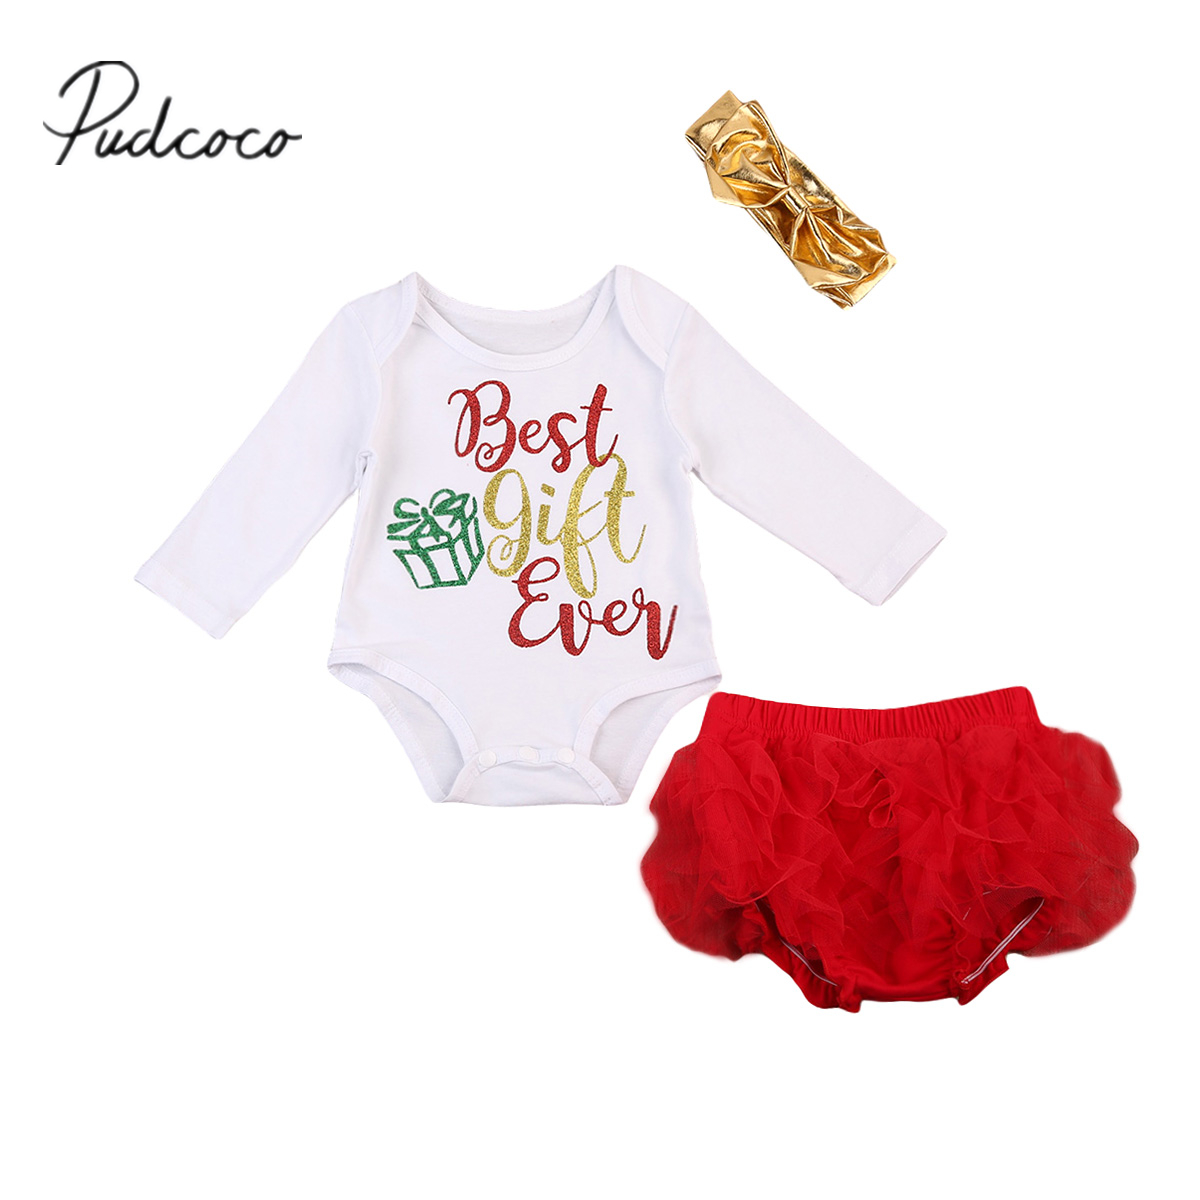 Pudcoco newborn baby christmas girls best gift ever top romper xmas tutu shorts 3pcs outfits set clothes 0 24m in clothing sets from mother kids on